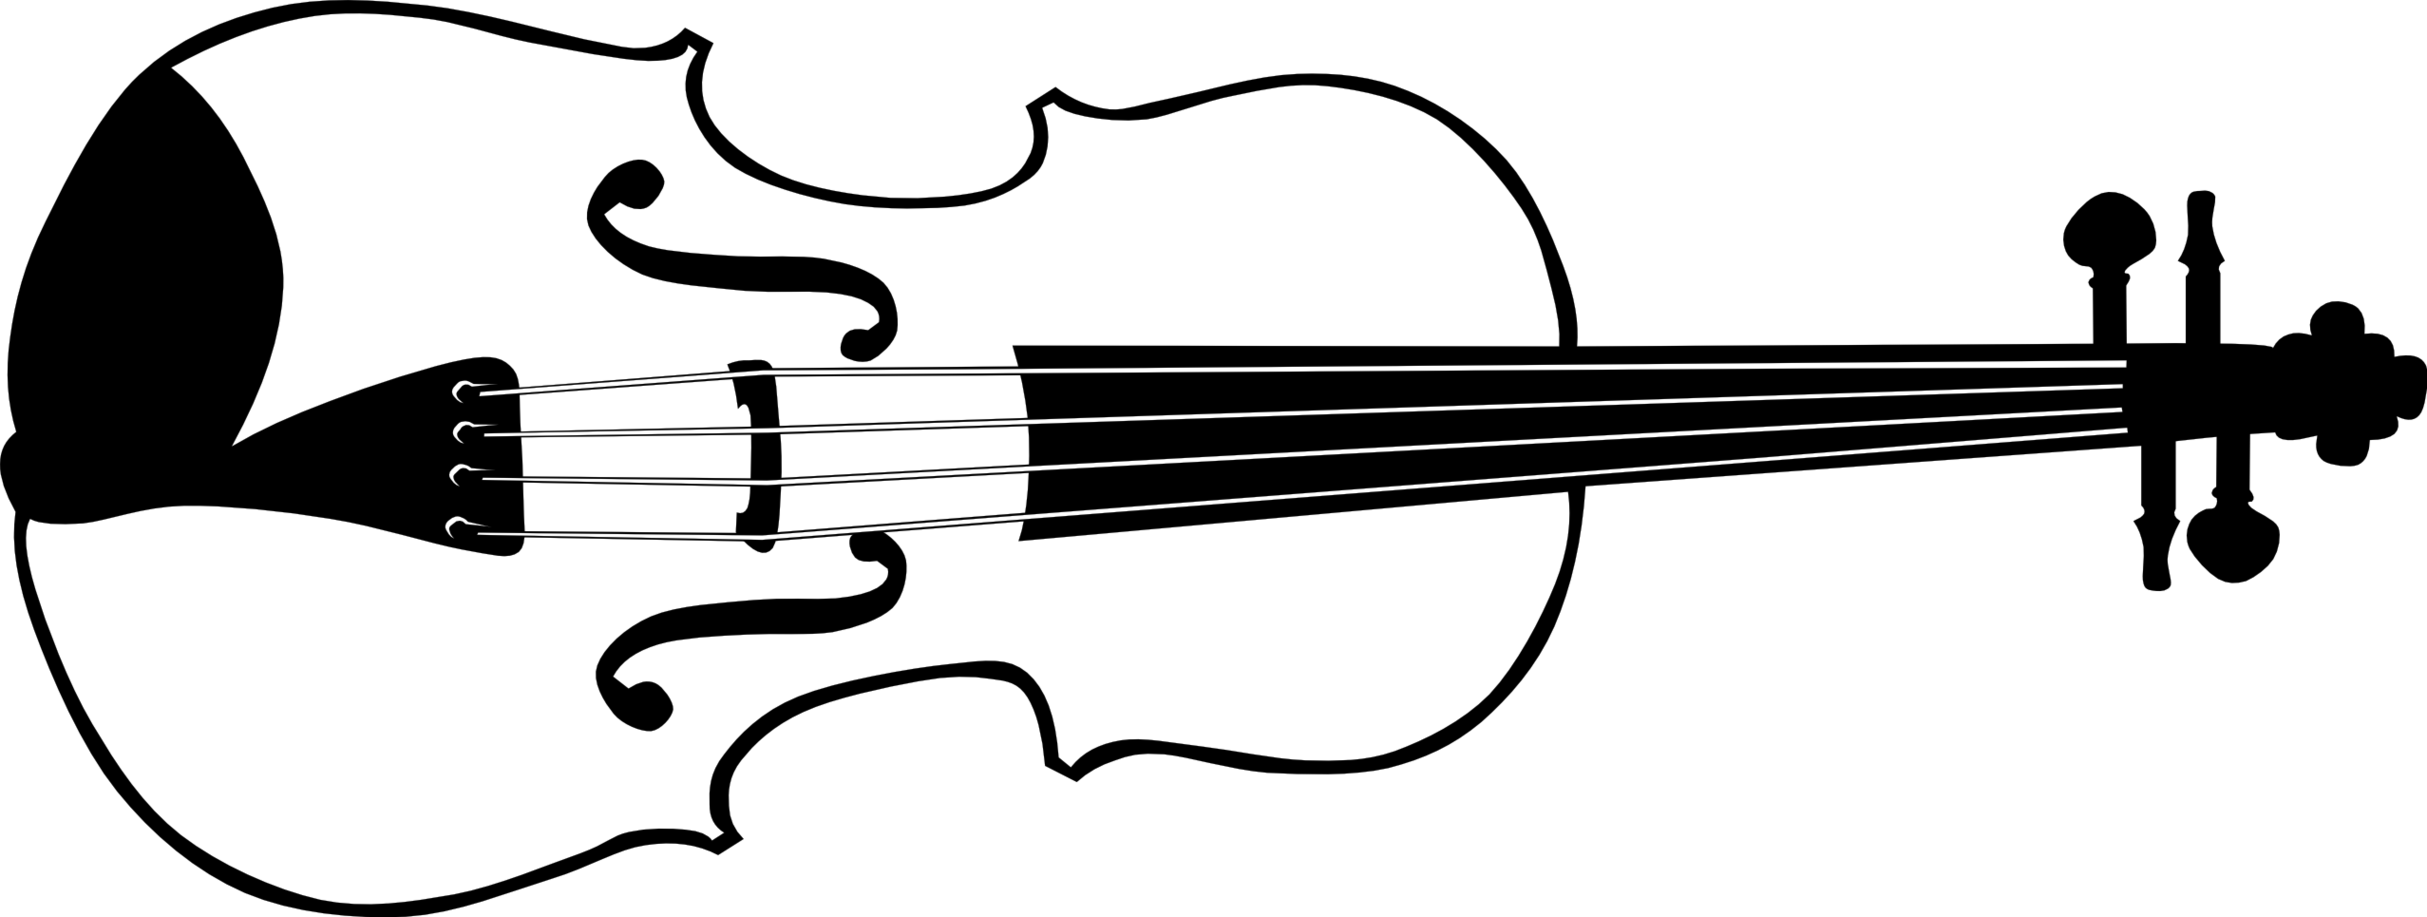 Instrument transparent free on. Instruments clipart popular